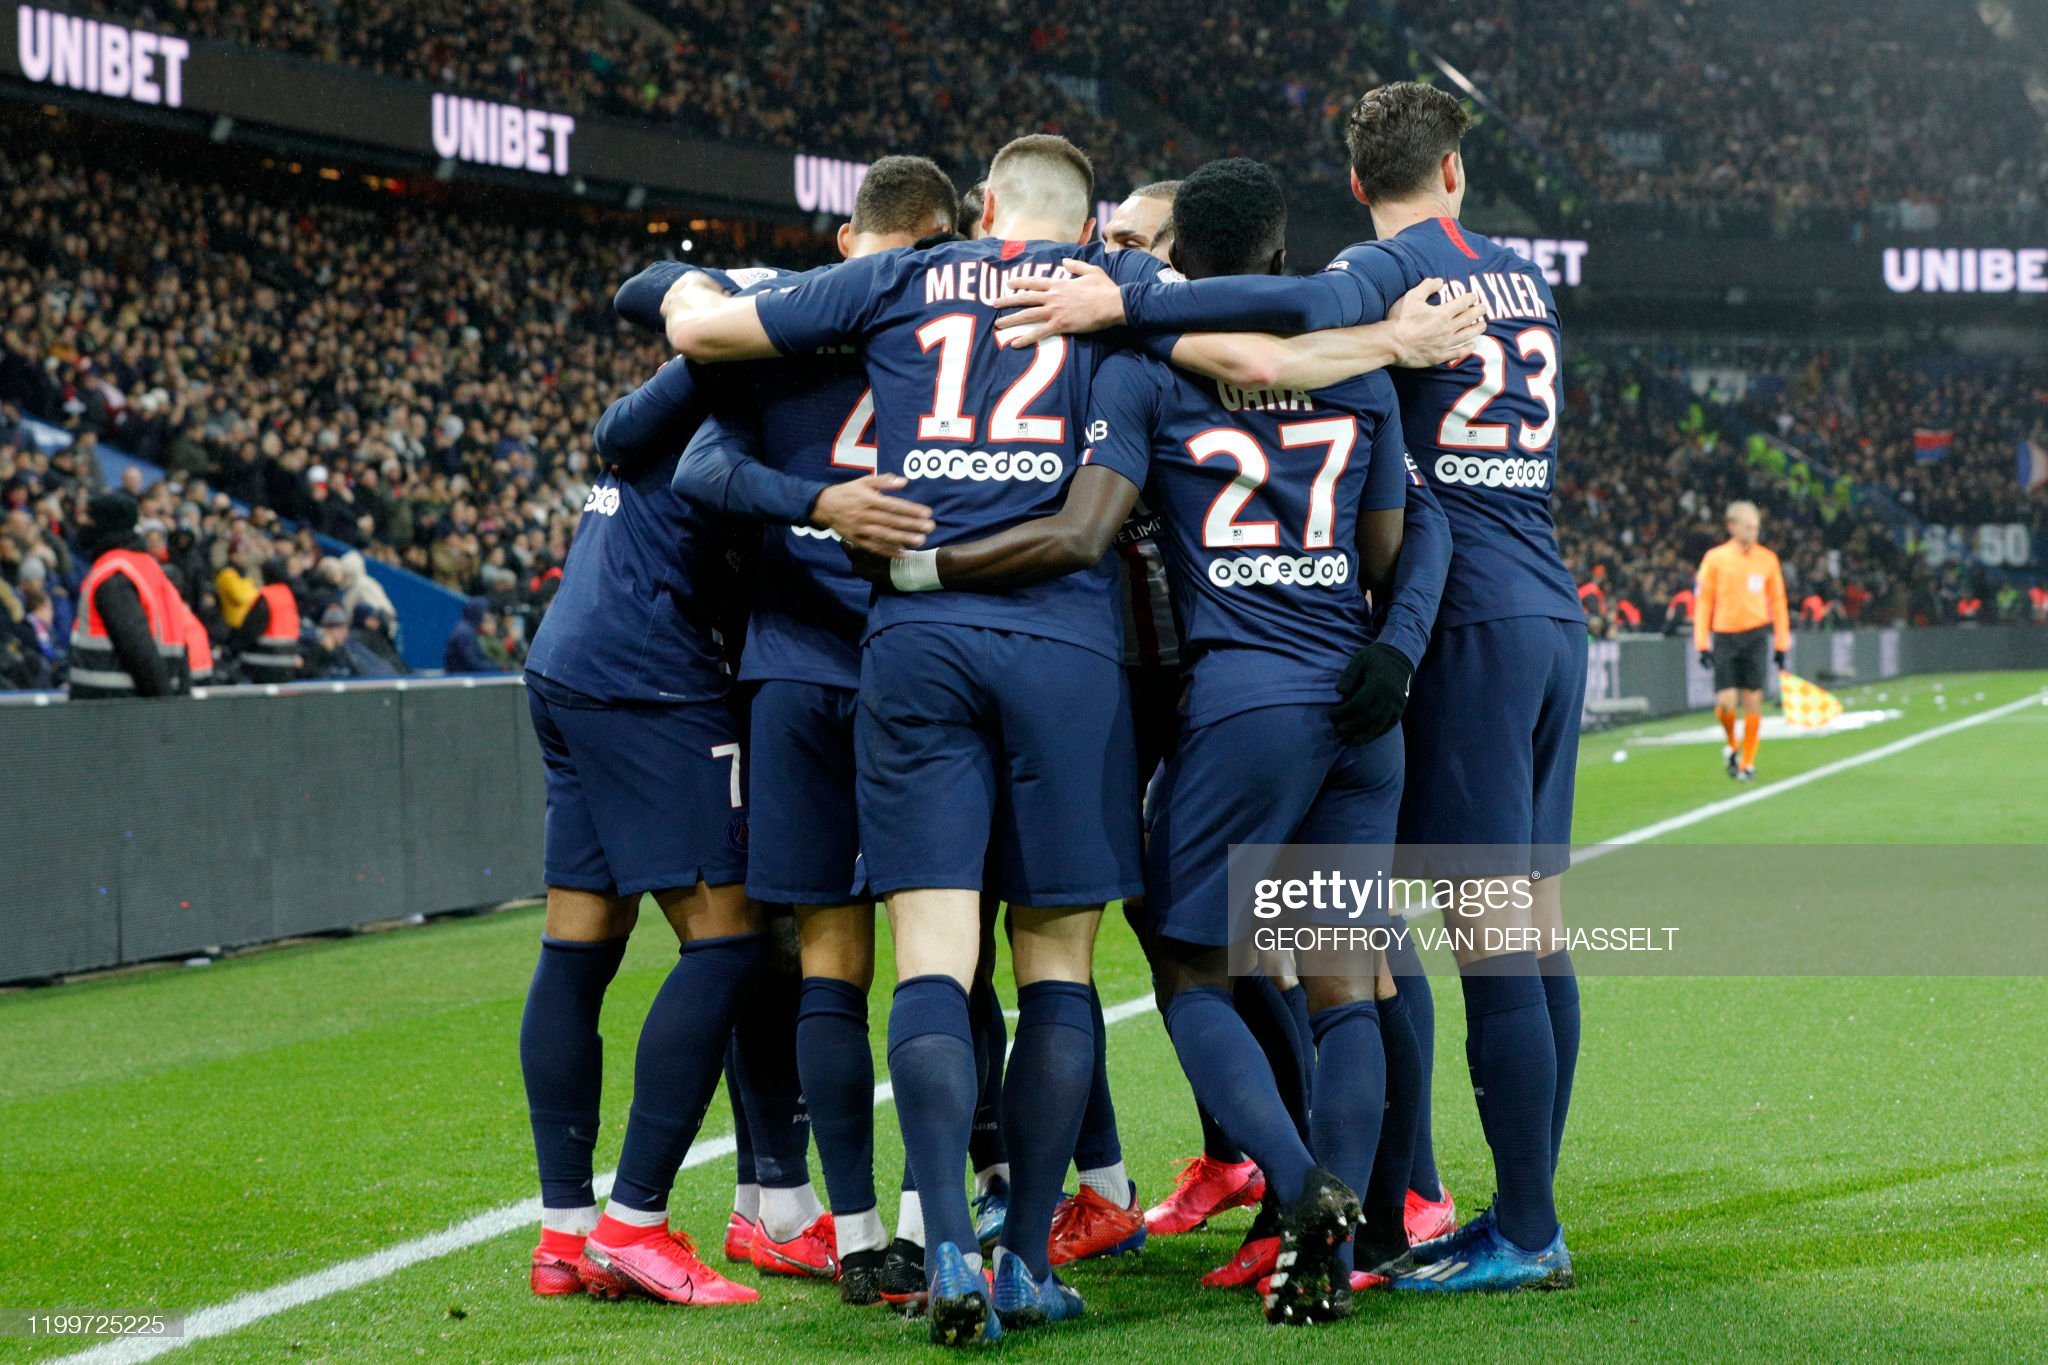 paris-saintgermains-players-celebrate-after-french-forward-kylian-a-picture-id1199725225?s=2048x2048